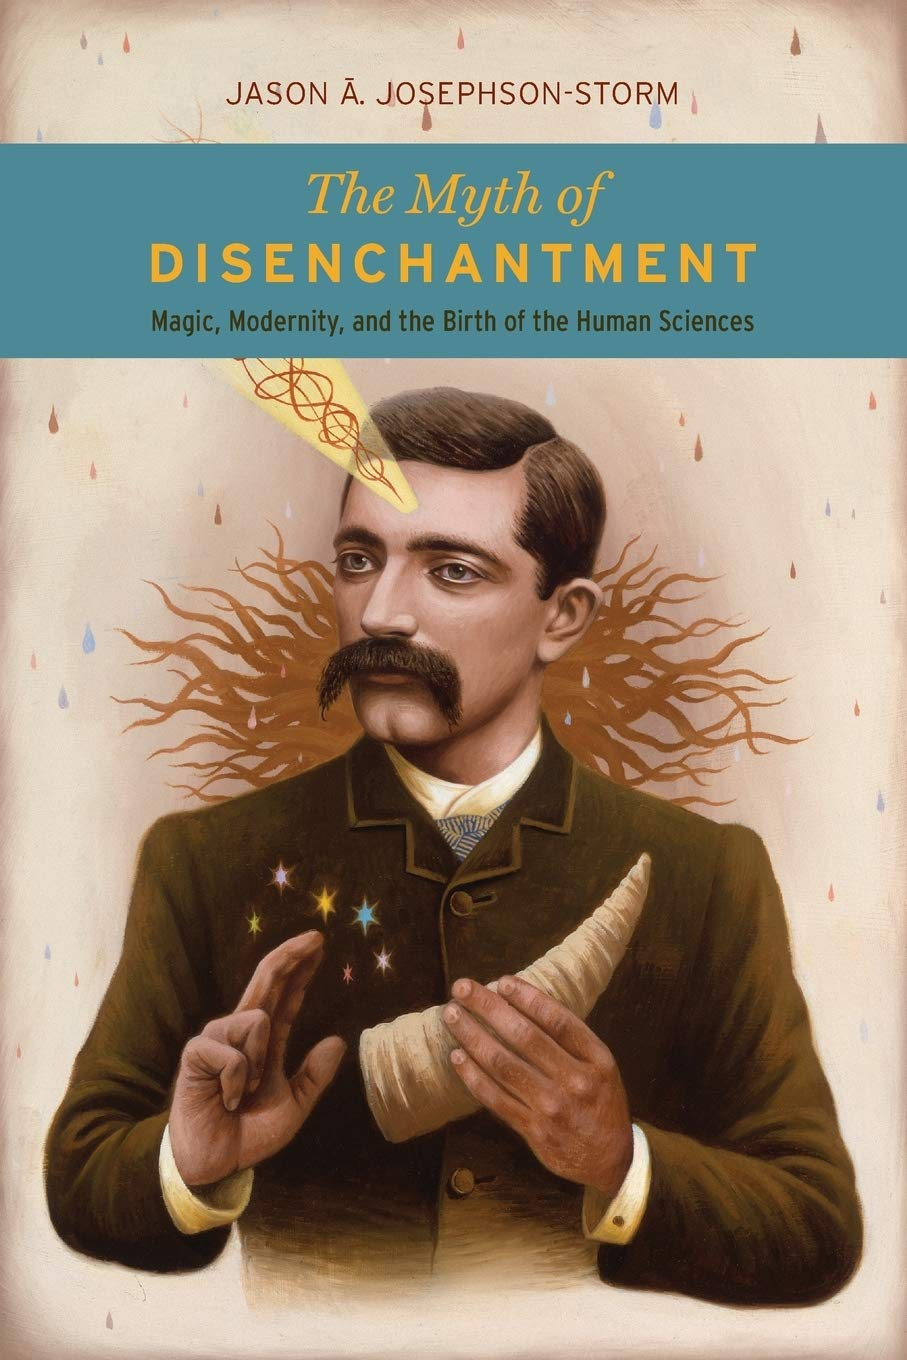 The Myth of Disenchantment: Magic, Modernity, and the Birth of the Human  Sciences: Storm, Jason Ananda Josephson: 9780226403366: Amazon.com: Books